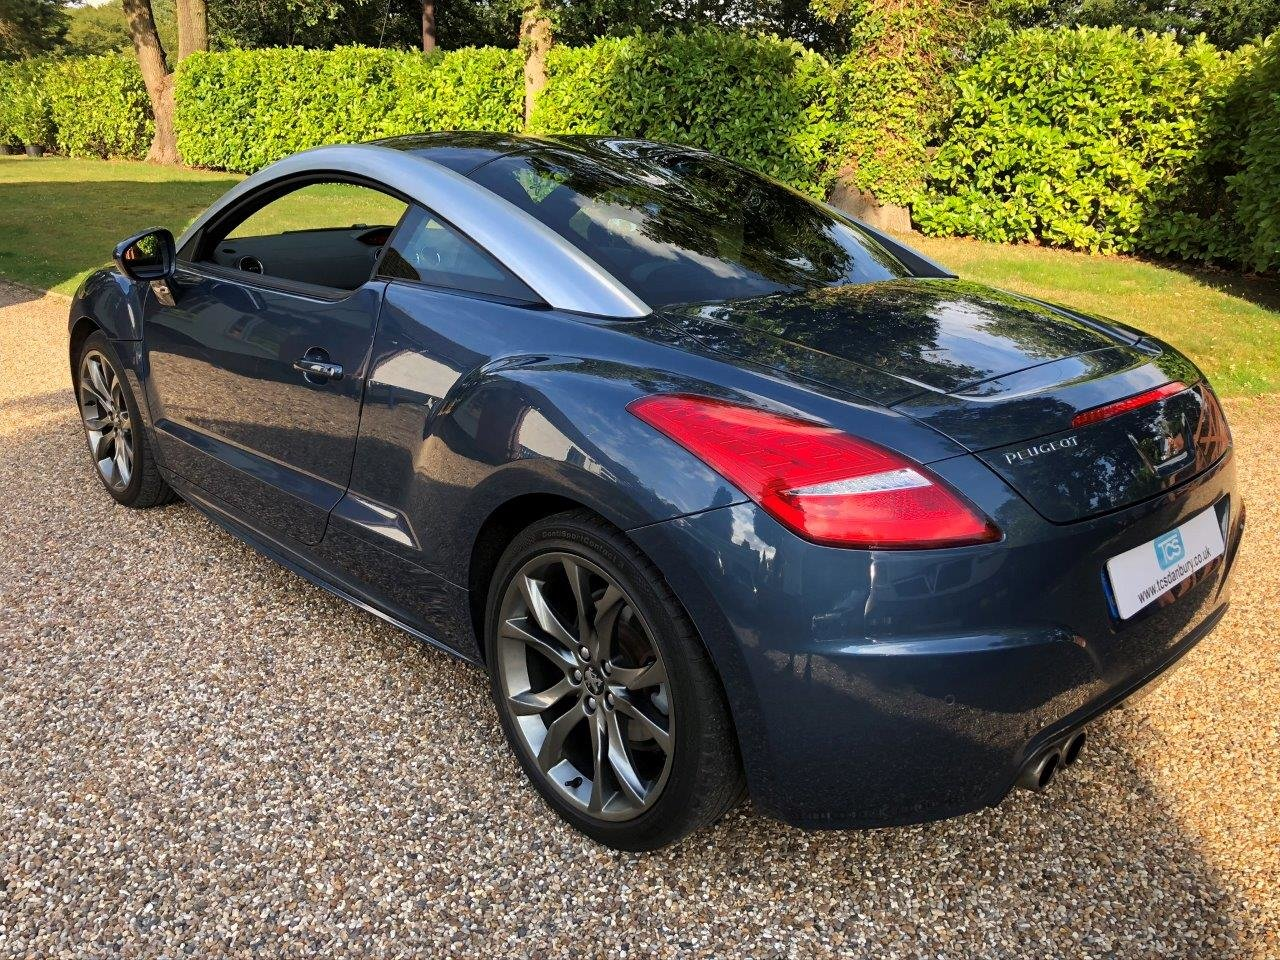 2013 Peugeot RCZ GT 156 1.6 Turbo 6-Speed Manual SOLD (picture 2 of 6)